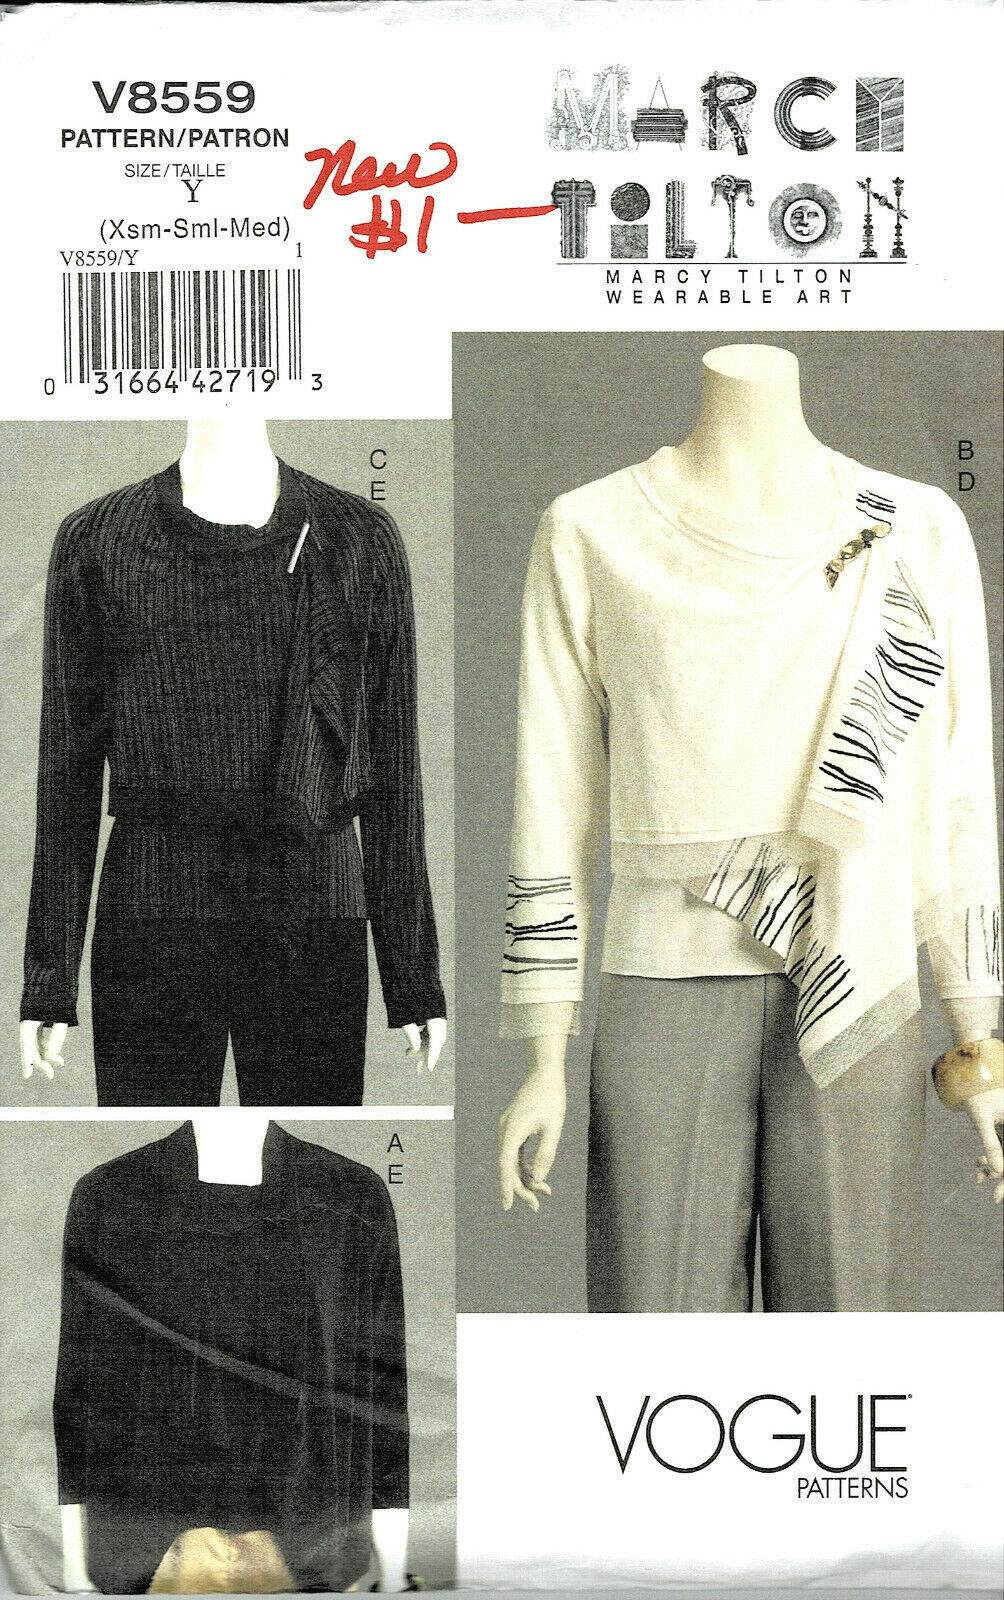 Primary image for Vogue Pattern V8559 Misses Jacket and Top Sizes XSM-SML-MED Uncut FF 2009